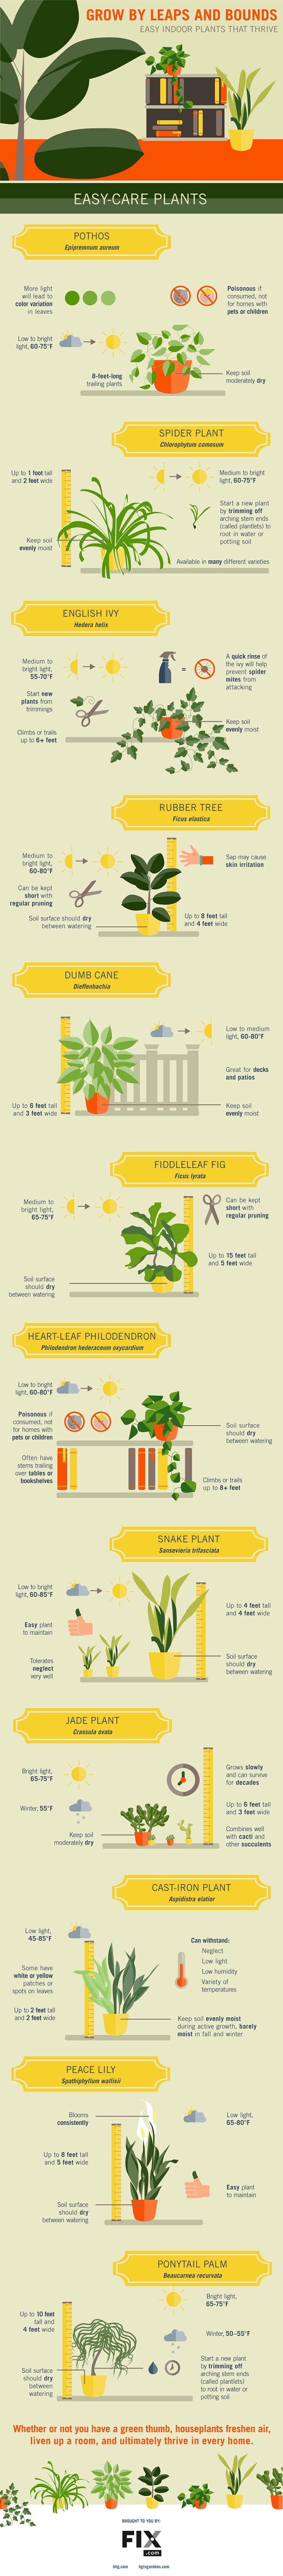 Infographic easytogrow houseplants peace lily pinterest